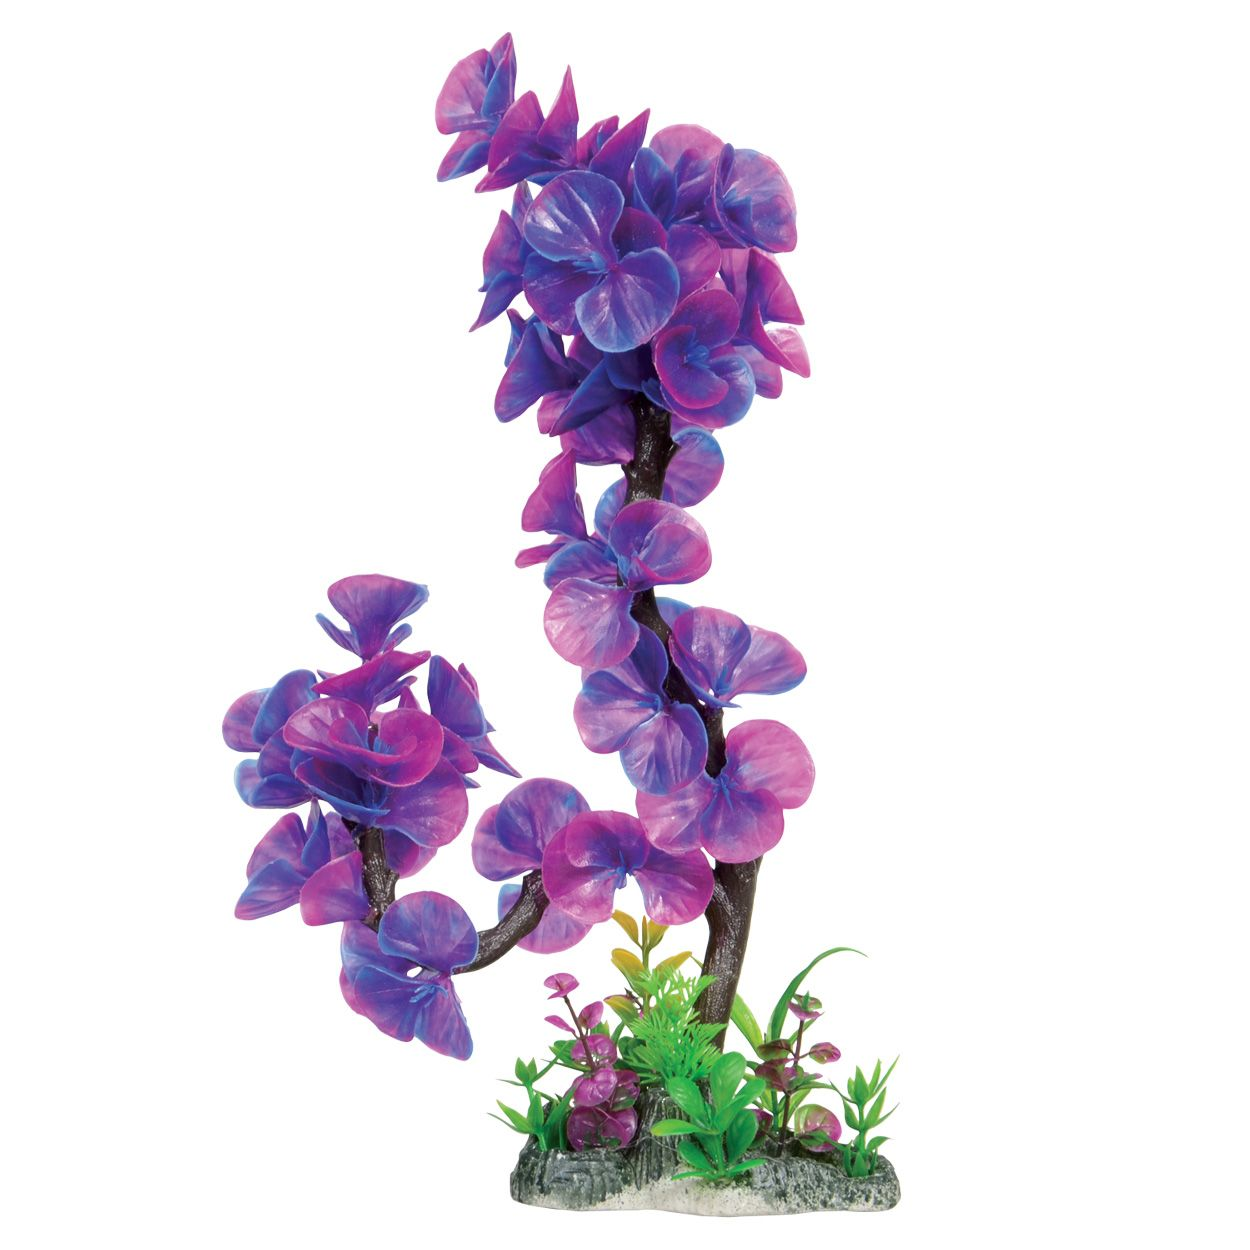 Underwater Treasures Lavender Lily - 14 inch